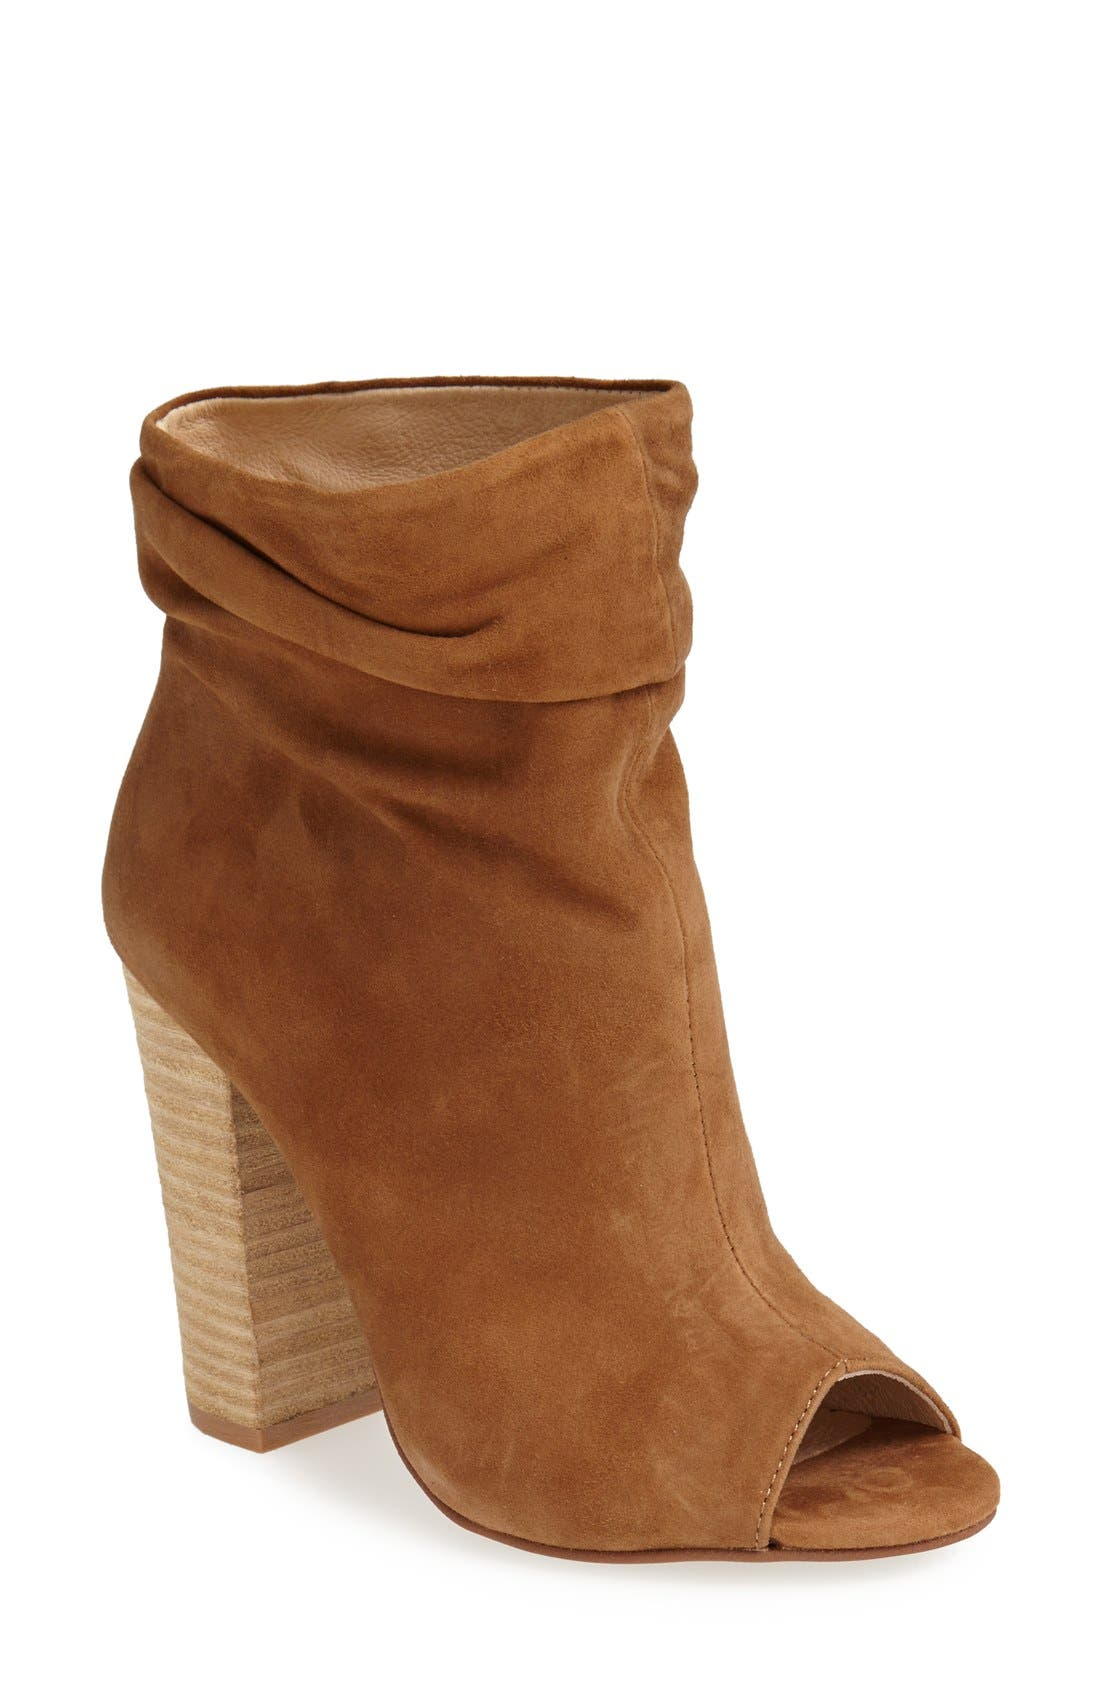 'Laurel' Peep Toe Bootie,                             Main thumbnail 1, color,                             Dark Camel